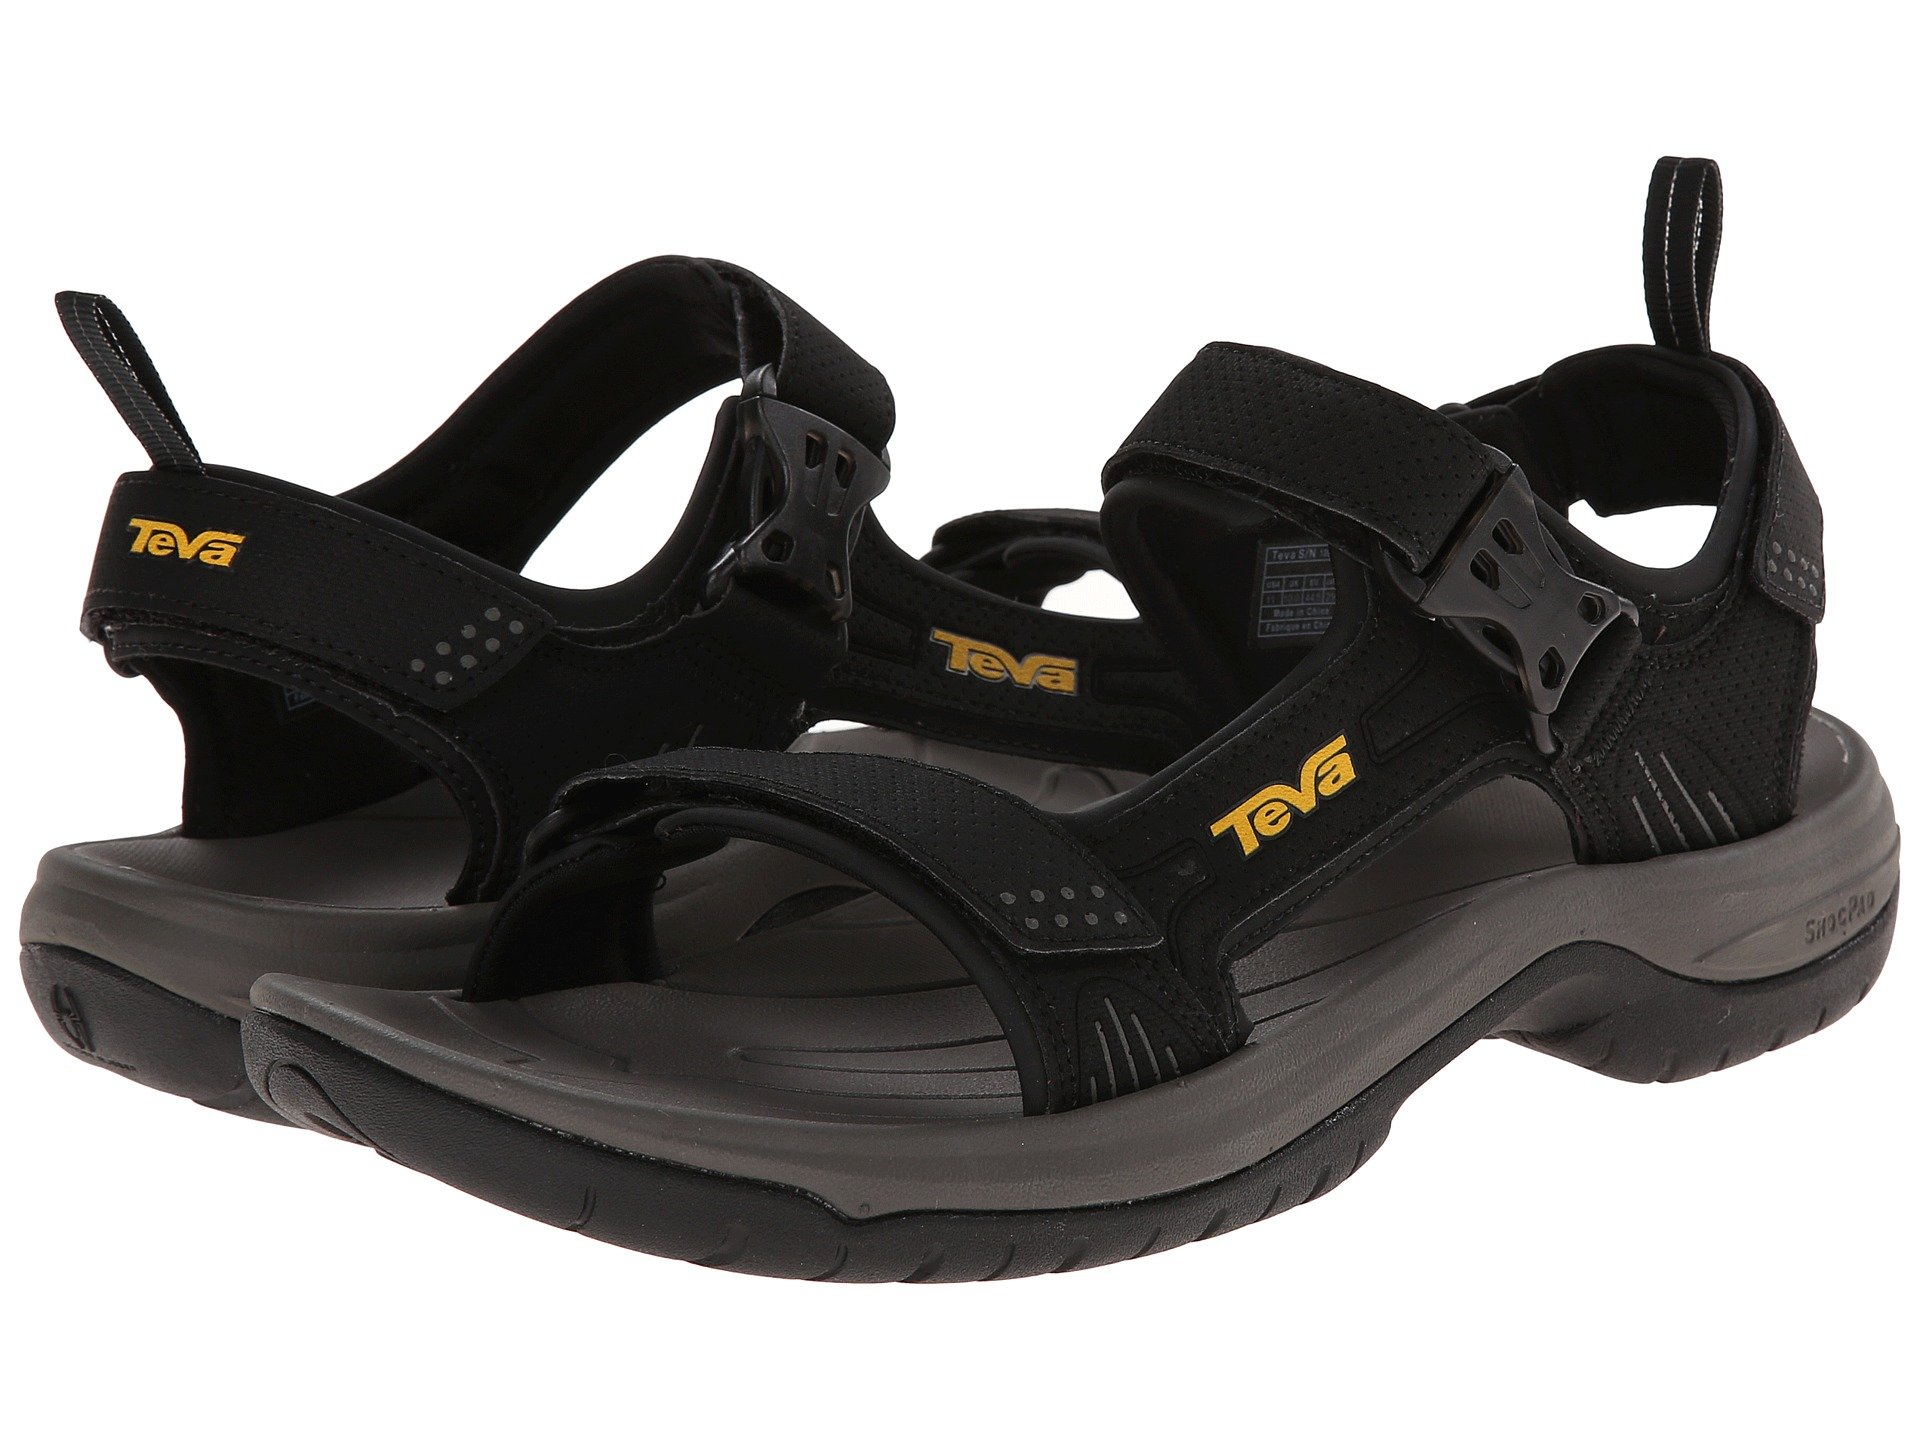 ab2a2789c42e Men s Teva Sandals + FREE SHIPPING